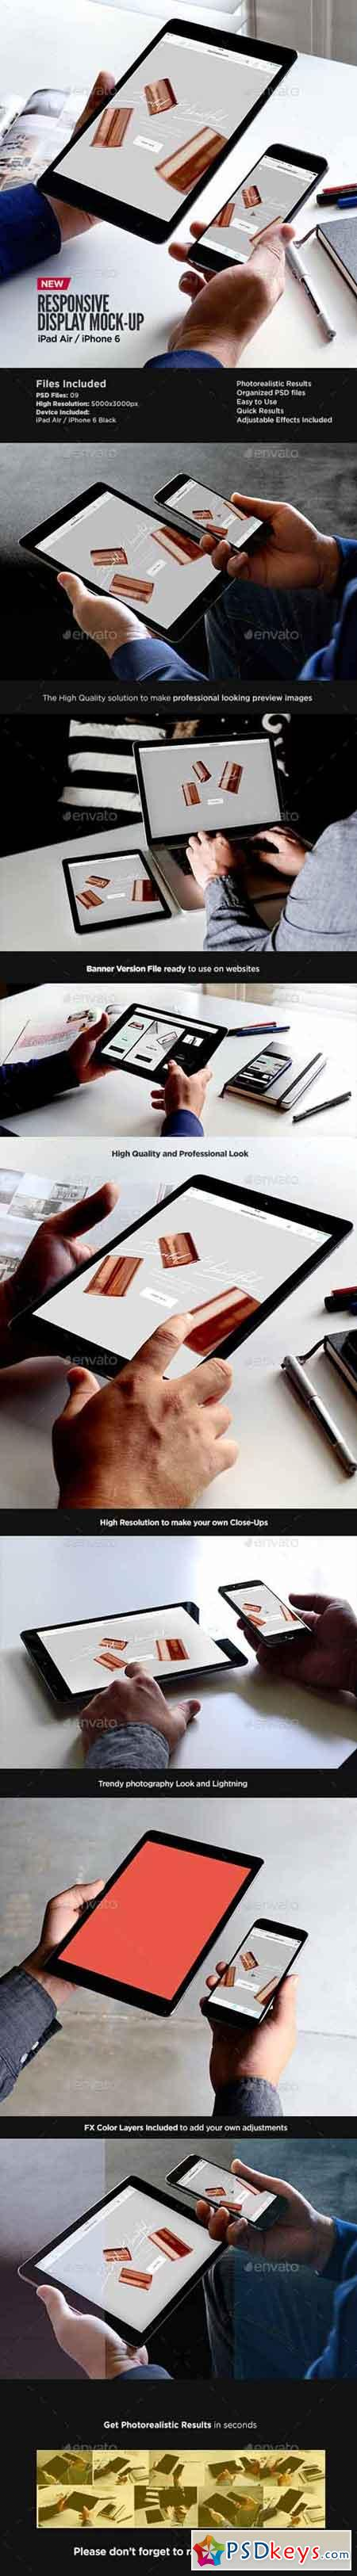 iPad Air iPhone Responsive Display Web App Mock-Up 13711991